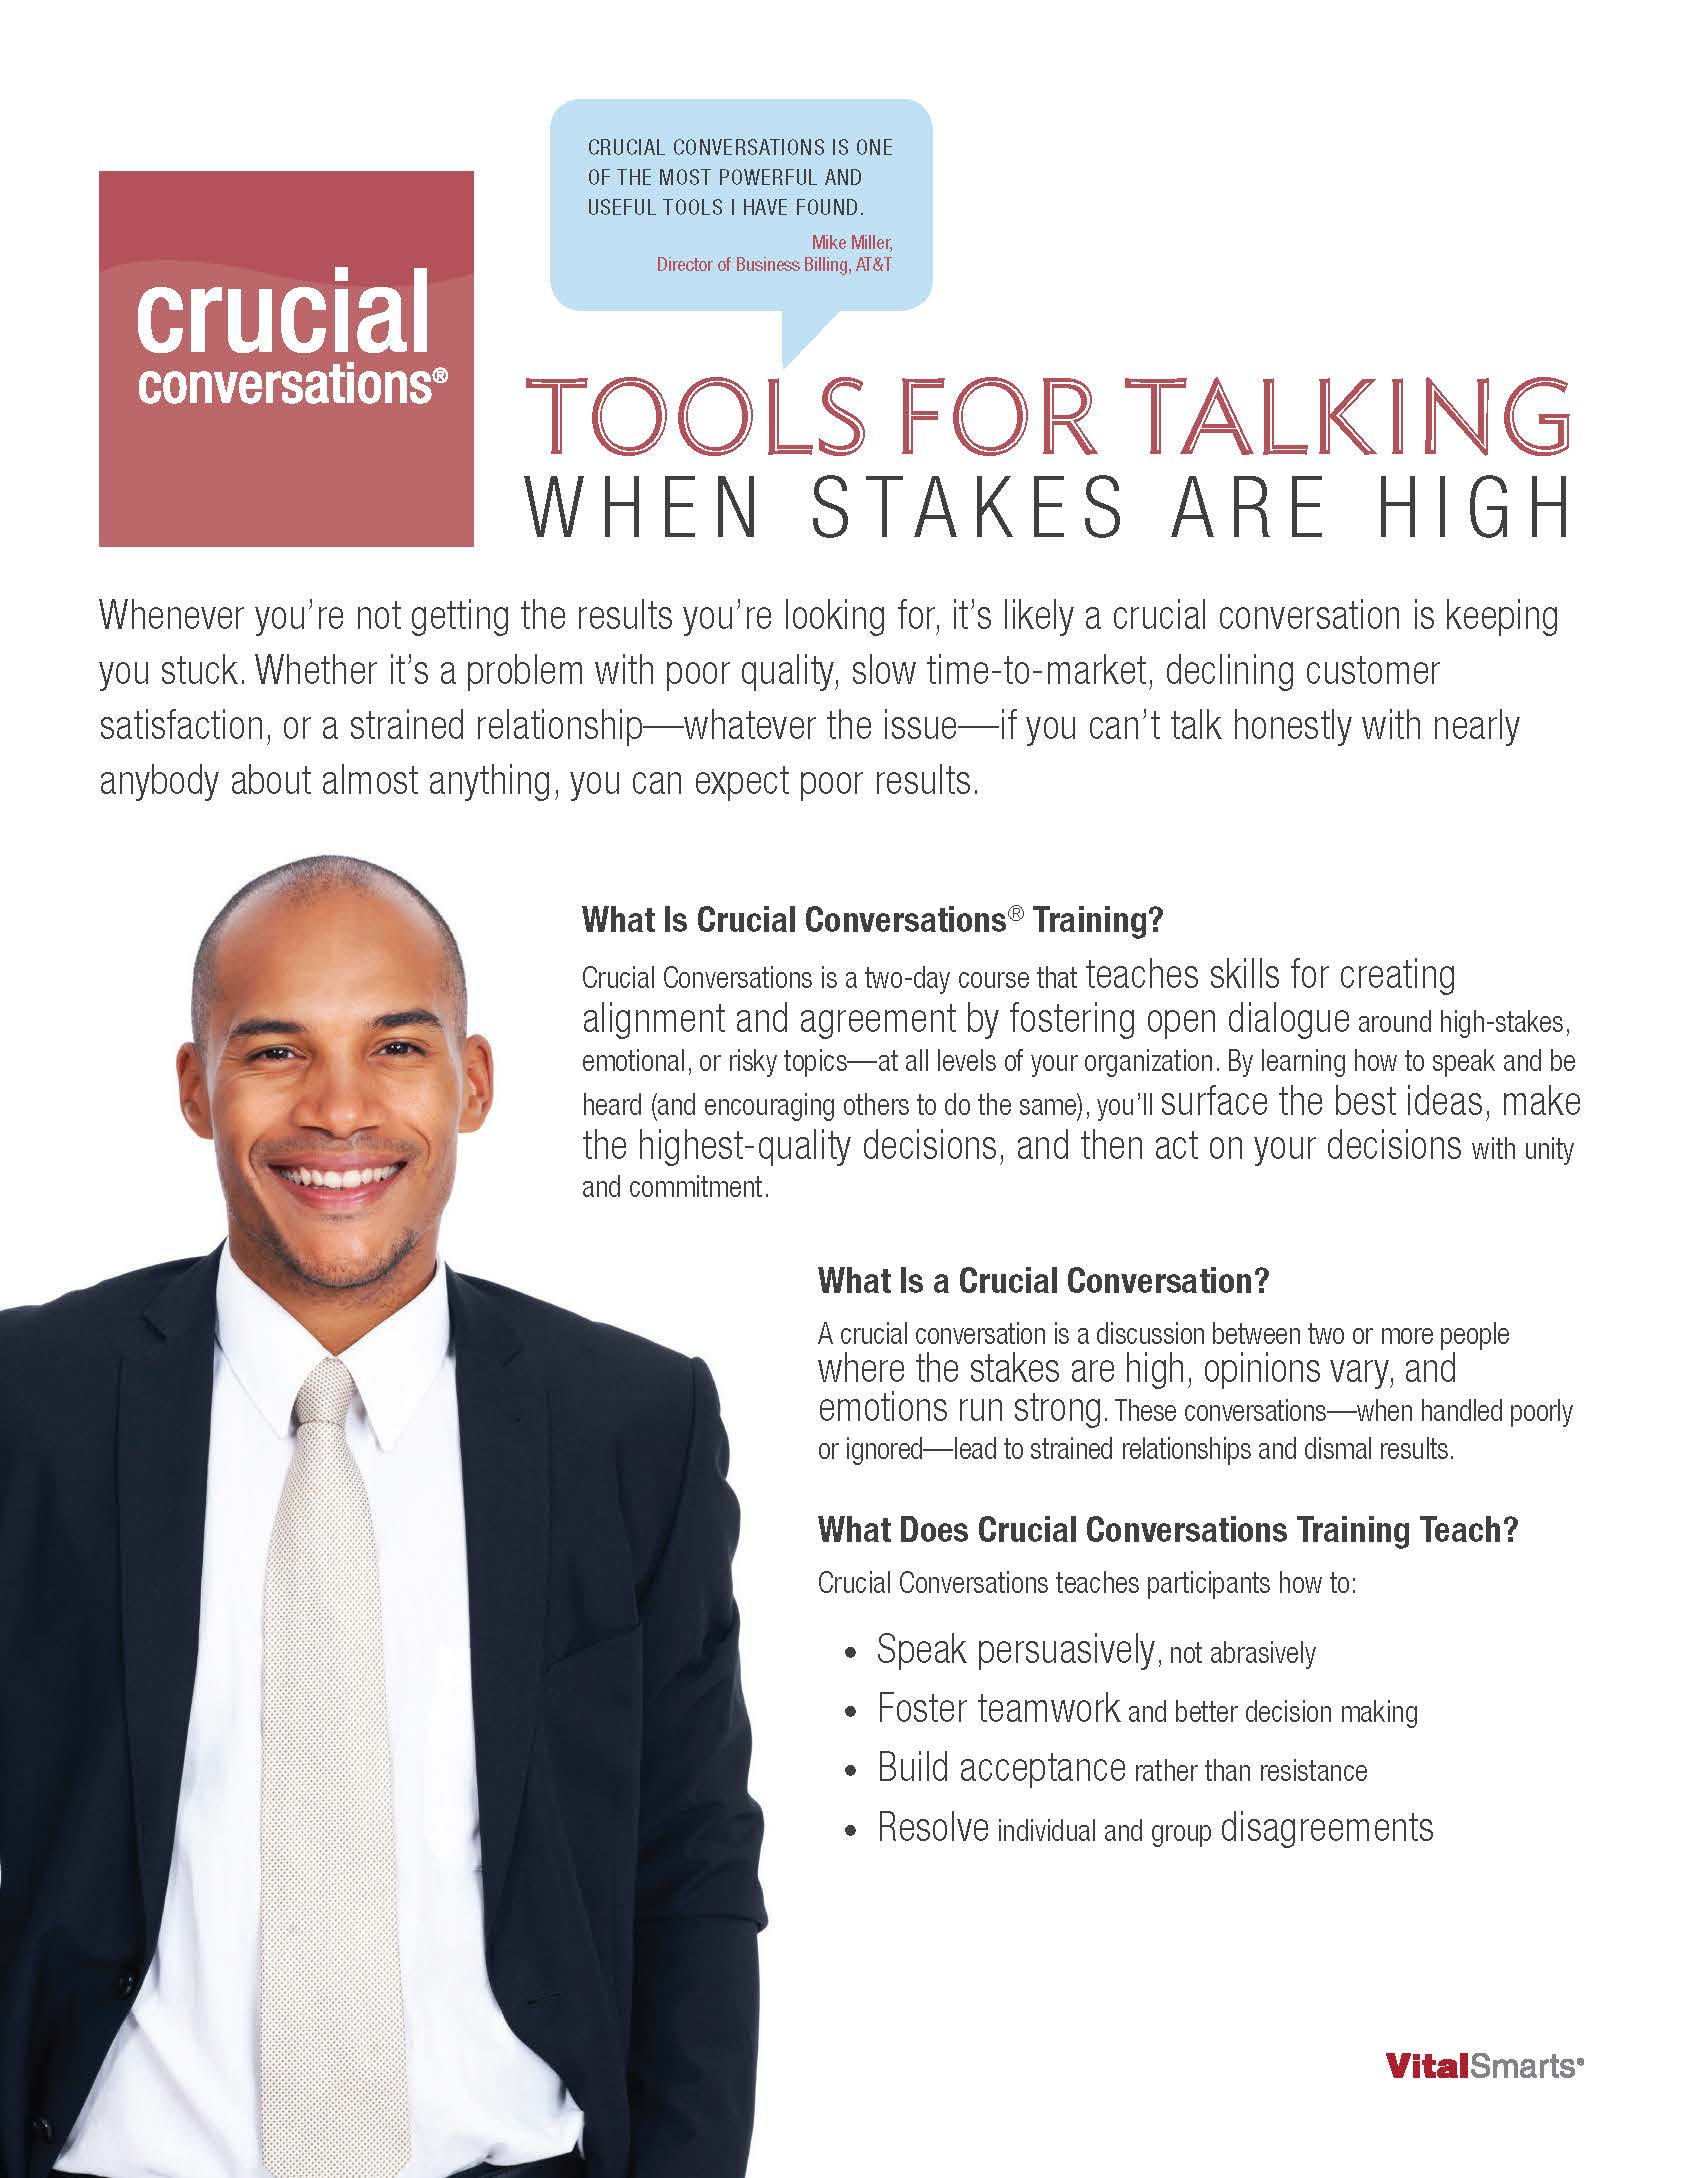 crucial conversations 2 crucial conversations tools for talking when stakes are high author: kerry patterson, joseph grenny, ron mcmillan and al switzler publisher: mcgraw-hill date of publication.